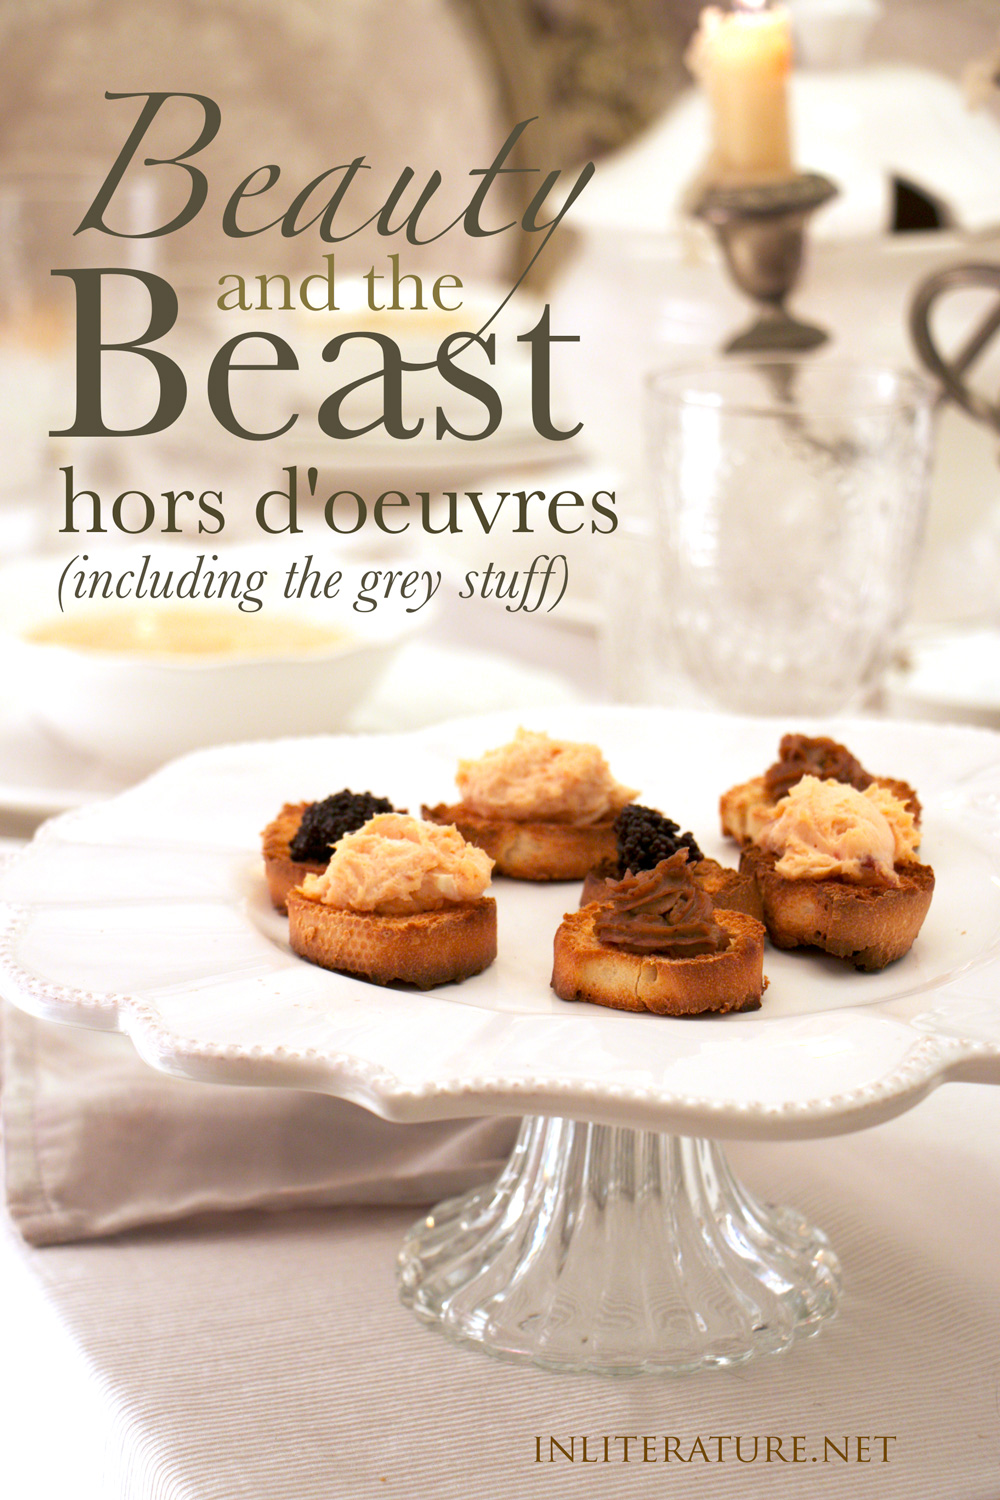 Beauty and the Beast hors doeuvres